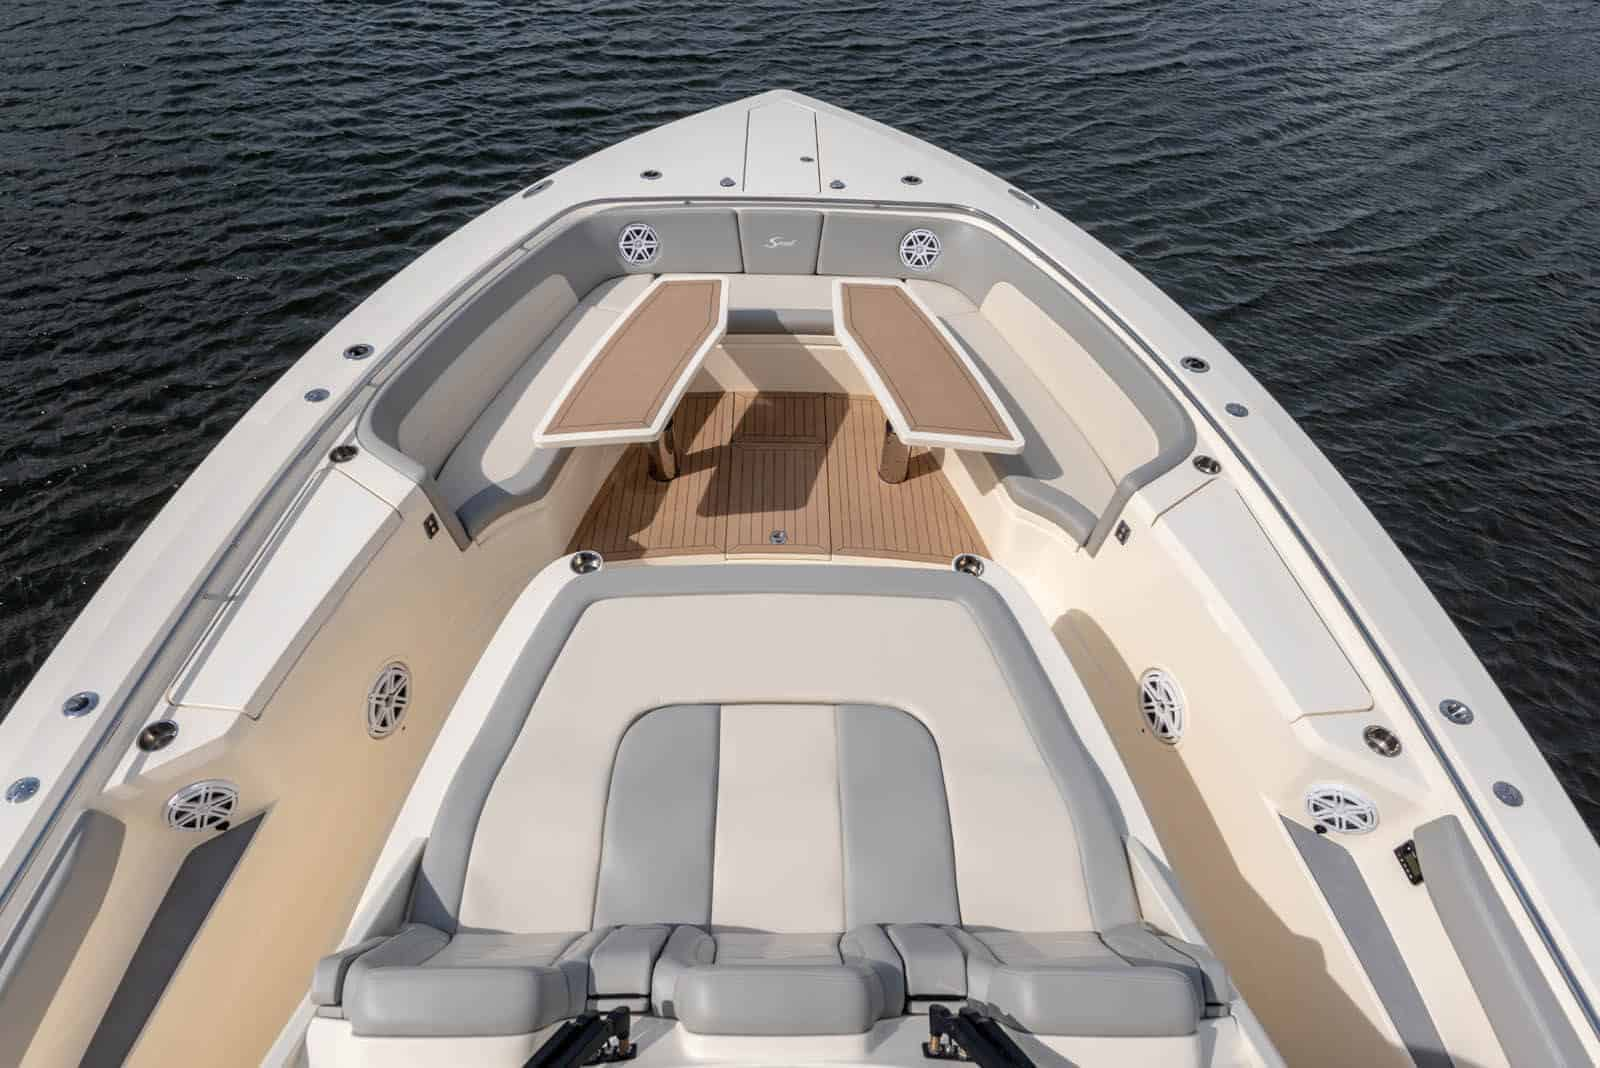 530LXF dual bow tables up